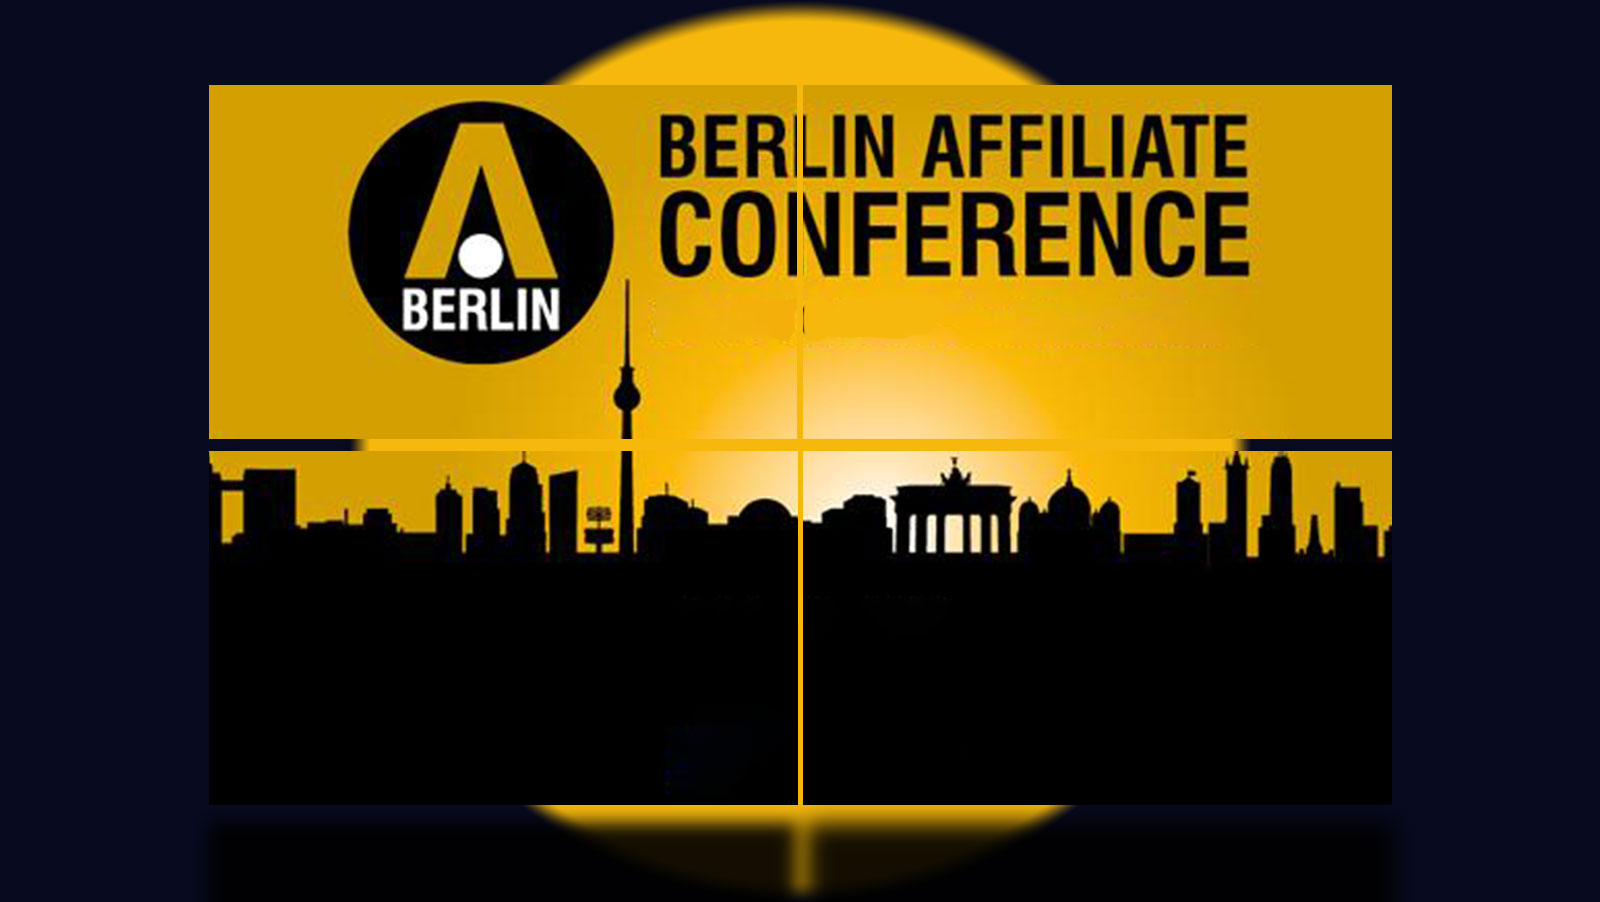 Becky's Affiliated: Top takeaways from one week of coverage in Berlin